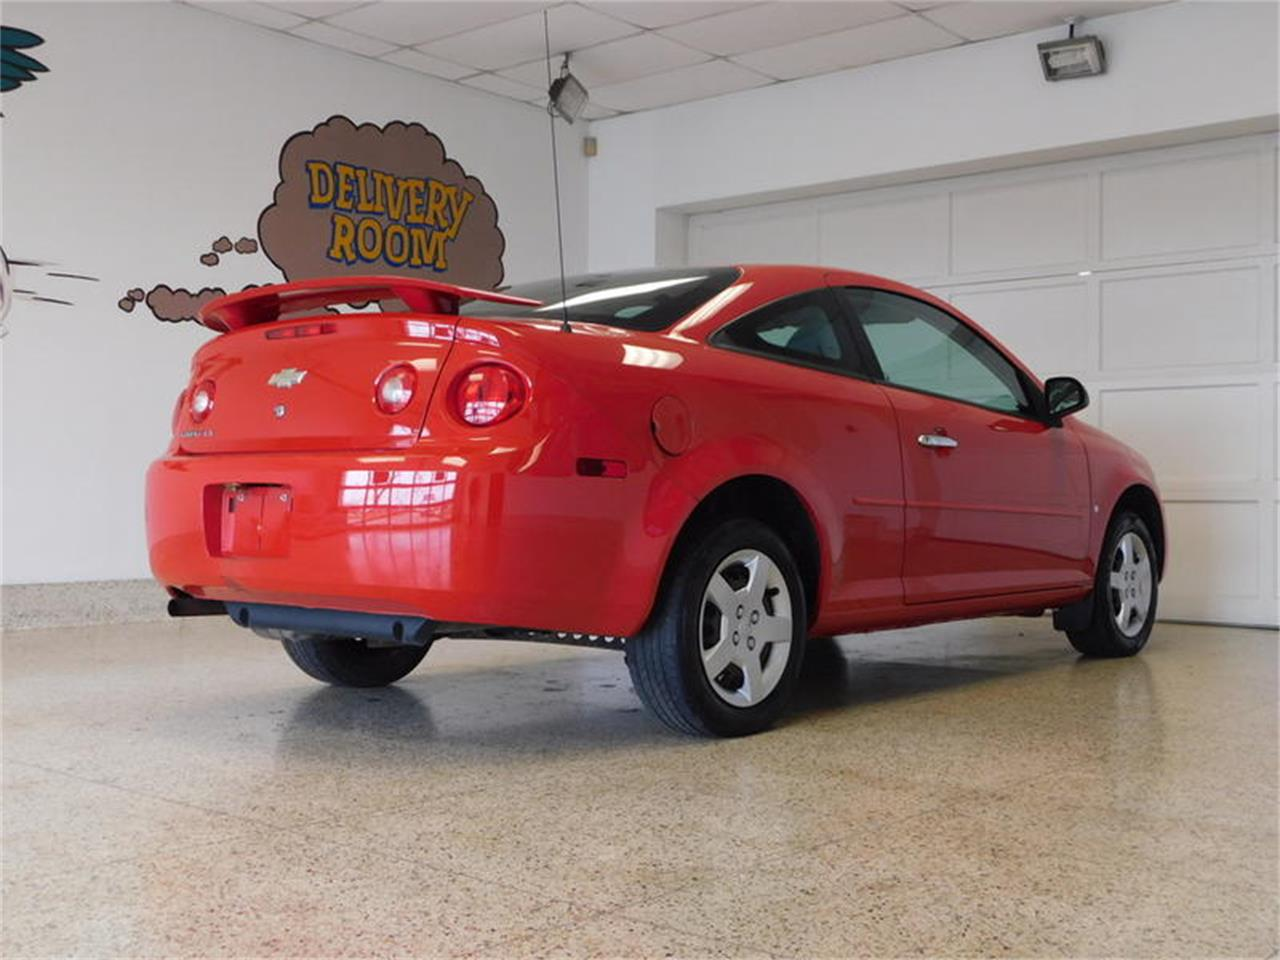 Large Picture of 2007 Chevrolet Cobalt located in Hamburg New York - $3,999.00 - QEMW